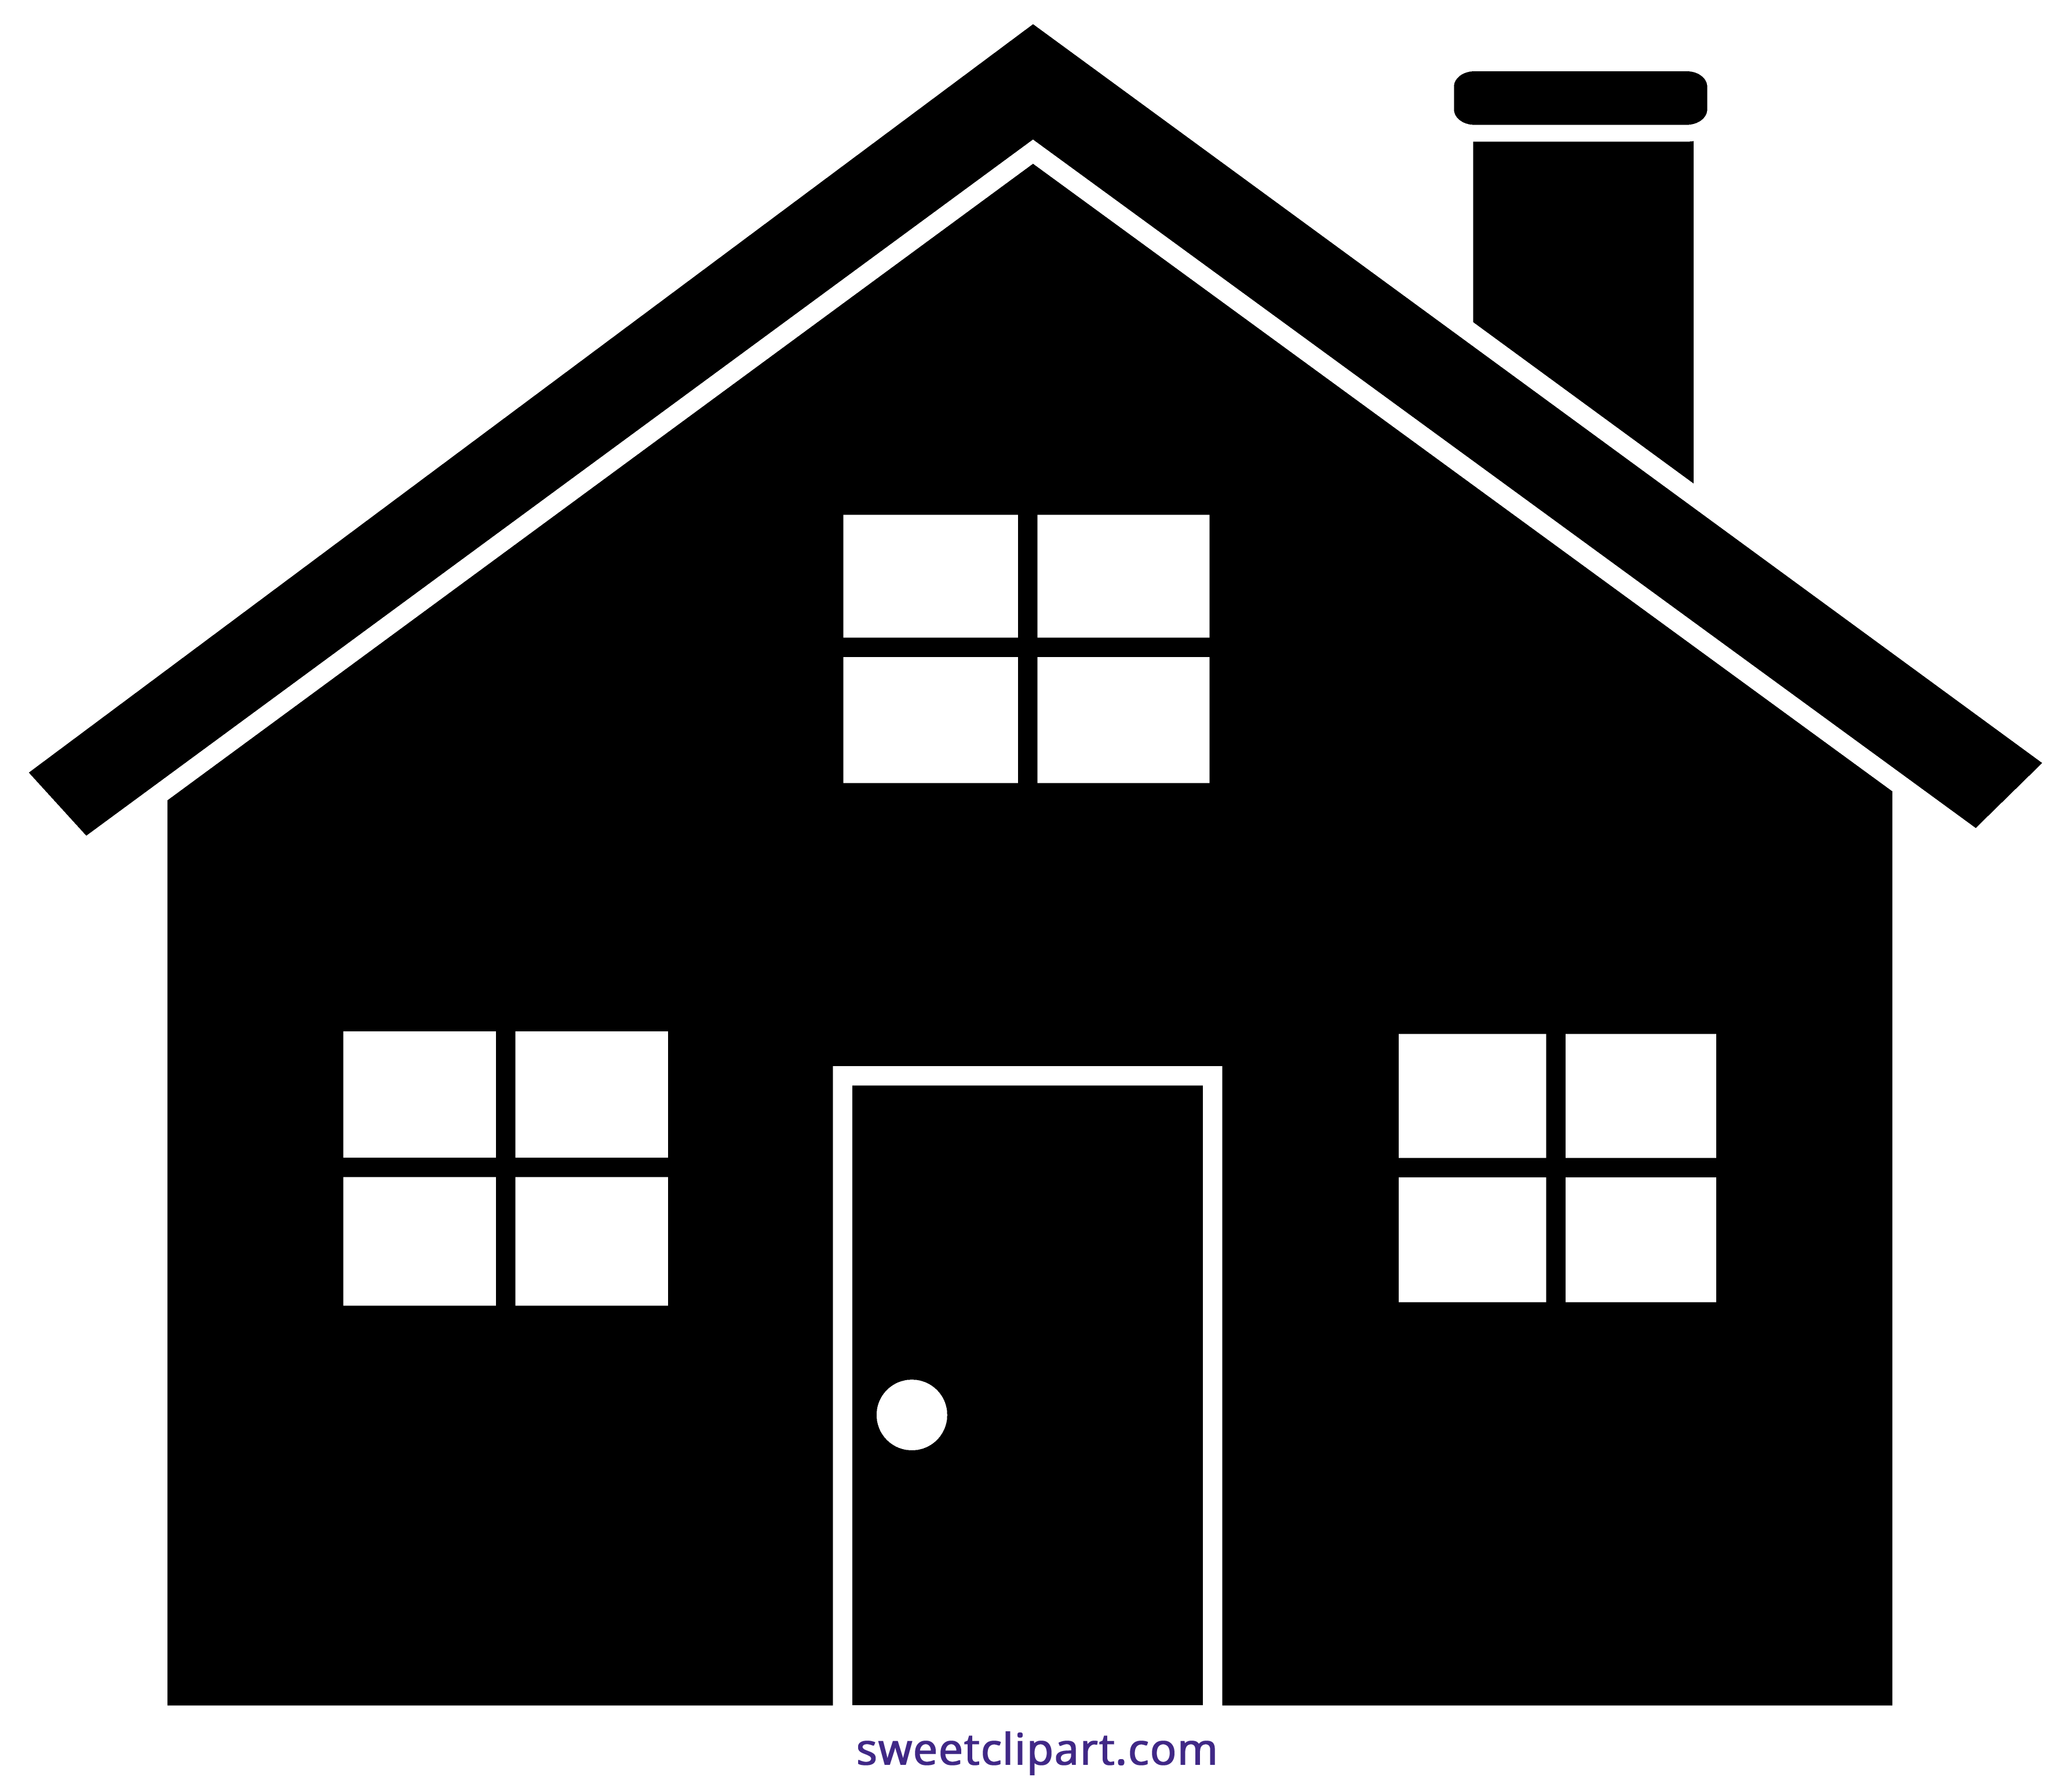 clipart freeuse House black silhouette sweet. Houses clipart sheep.